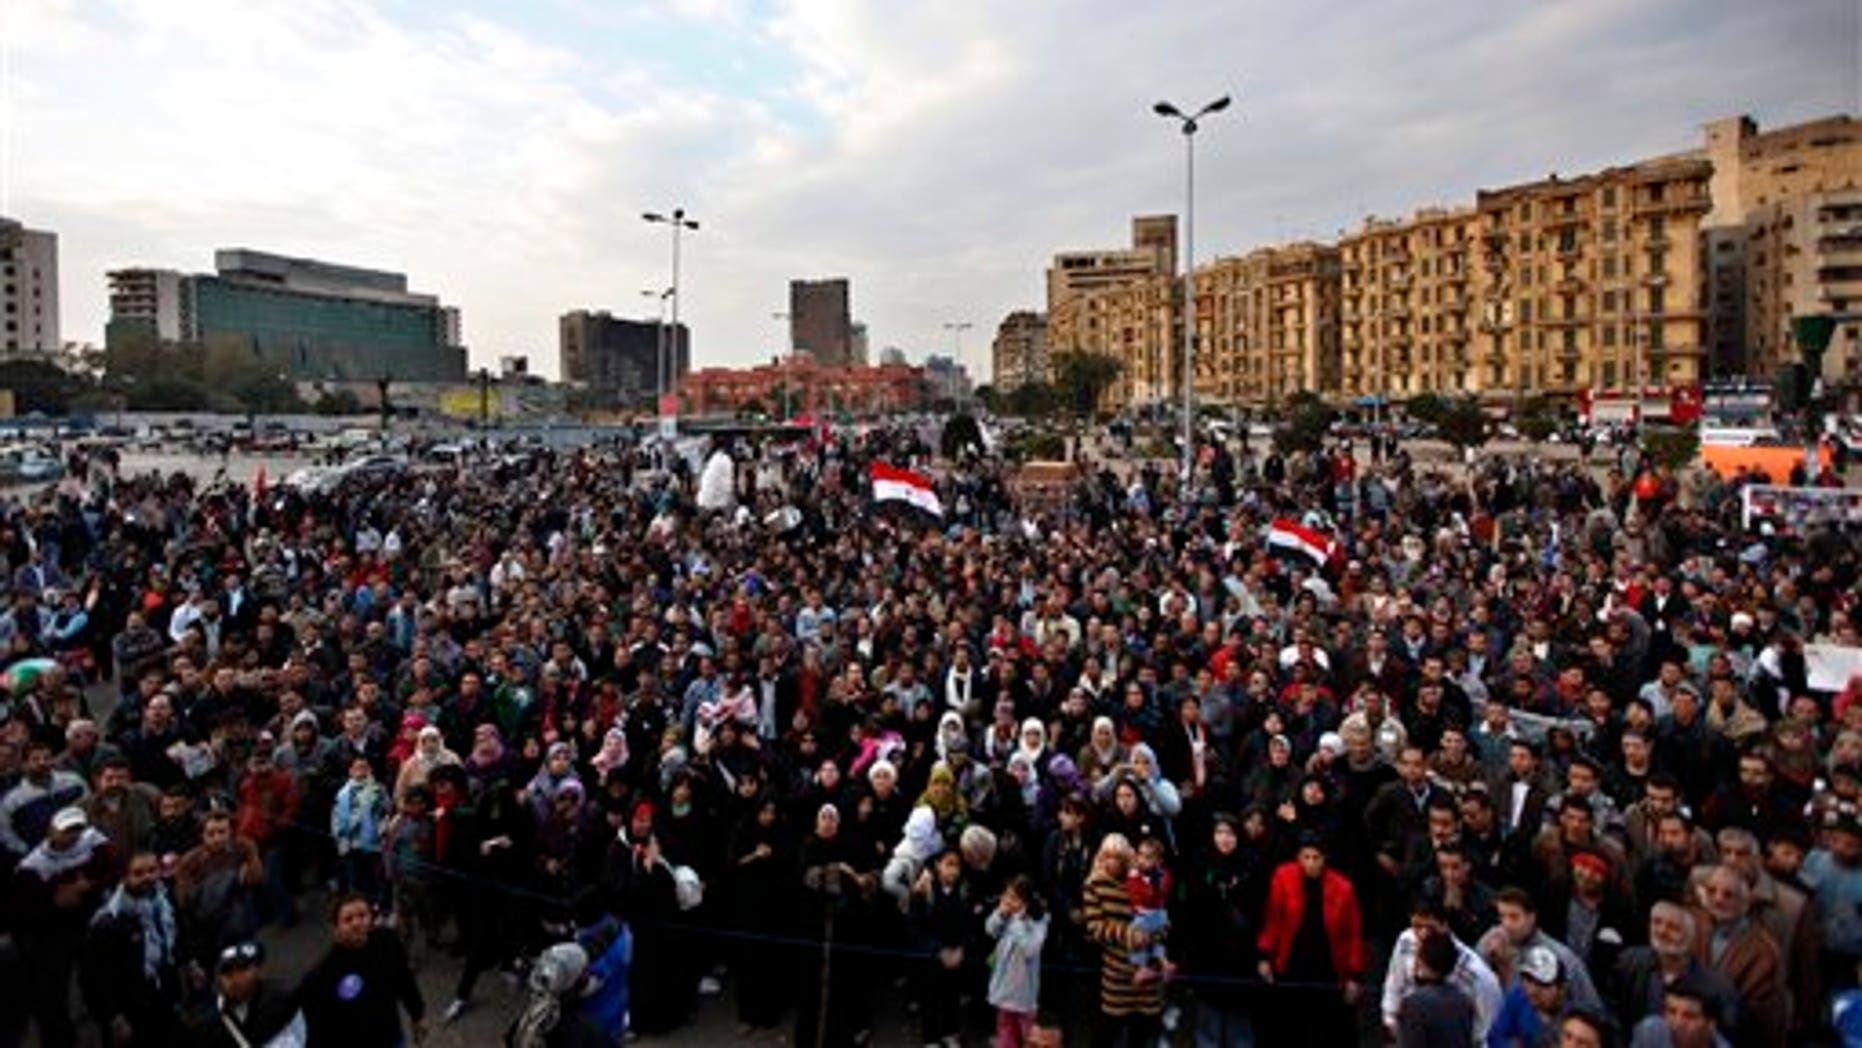 Jan. 20: Protesters chant slogans at a rally honoring those killed in clashes with security forces in Tahrir Square in Cairo nearly a year after the 18-day uprising that ousted President Hosni Mubarak.